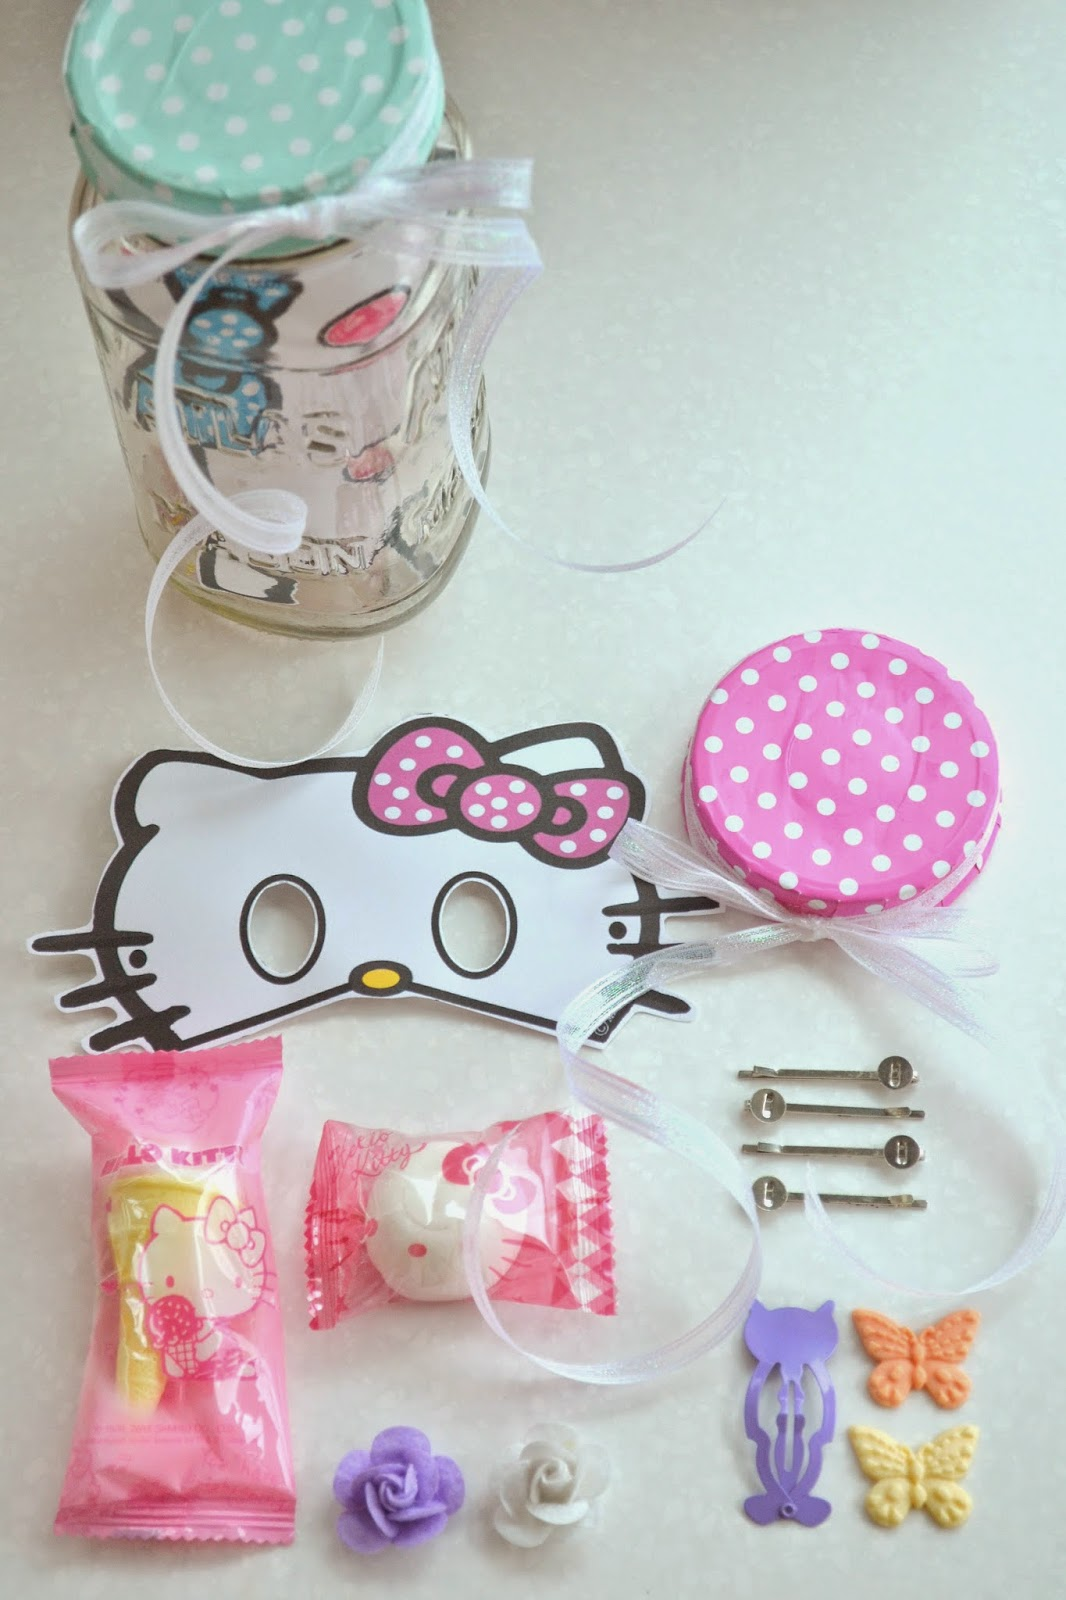 Julie ann events inside the hello kitty gift bags